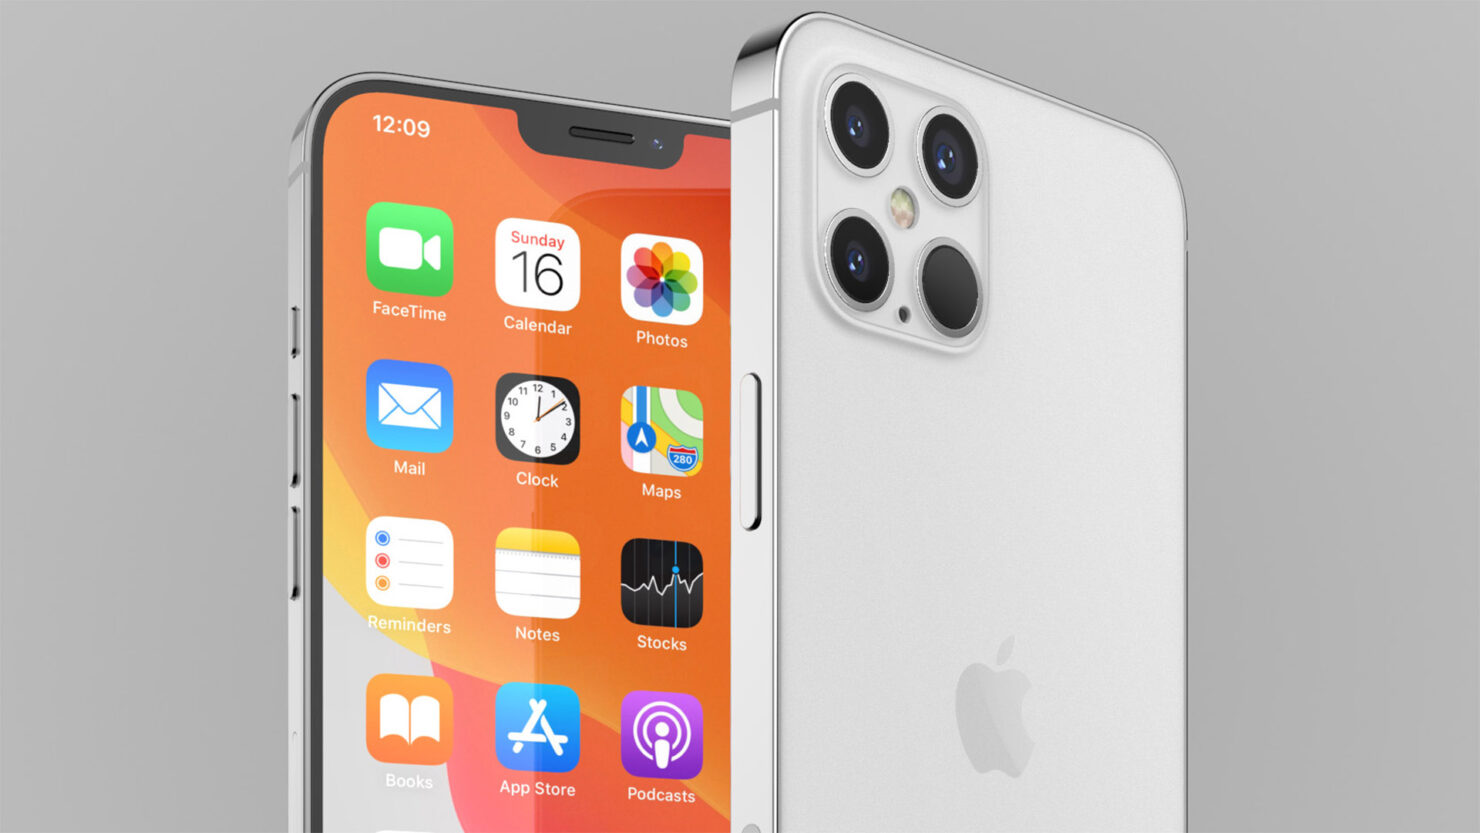 iPhone 12 Will Reportedly Lack 120Hz Driver ICs, Preventing All Four Models From Supporting a High Refresh Rate